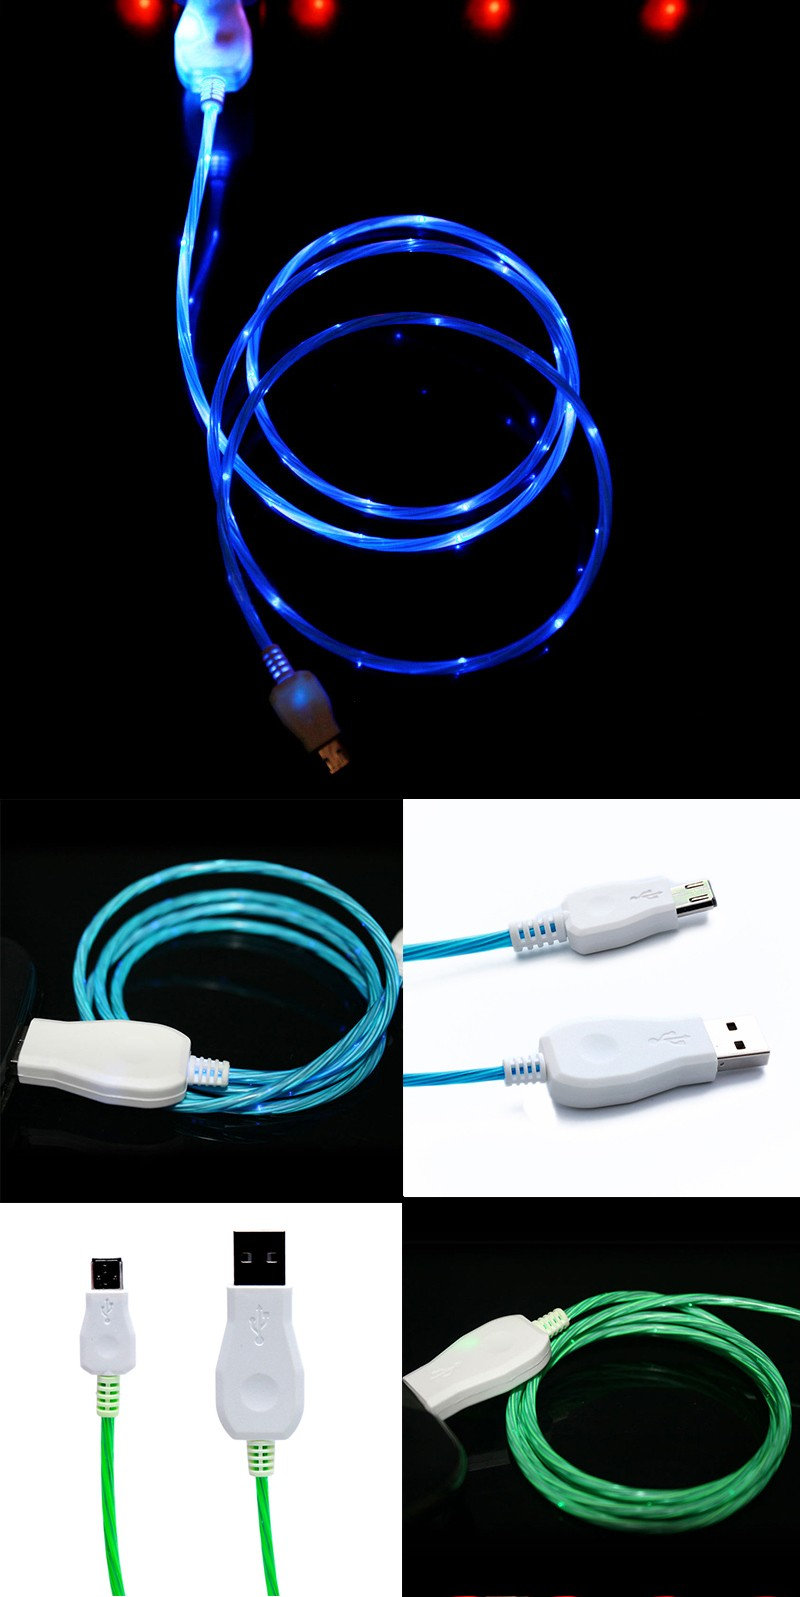 Usb Usb Kabel Fliegende Led Kabel Leuchten Ladekabel Led Micro Usb ...